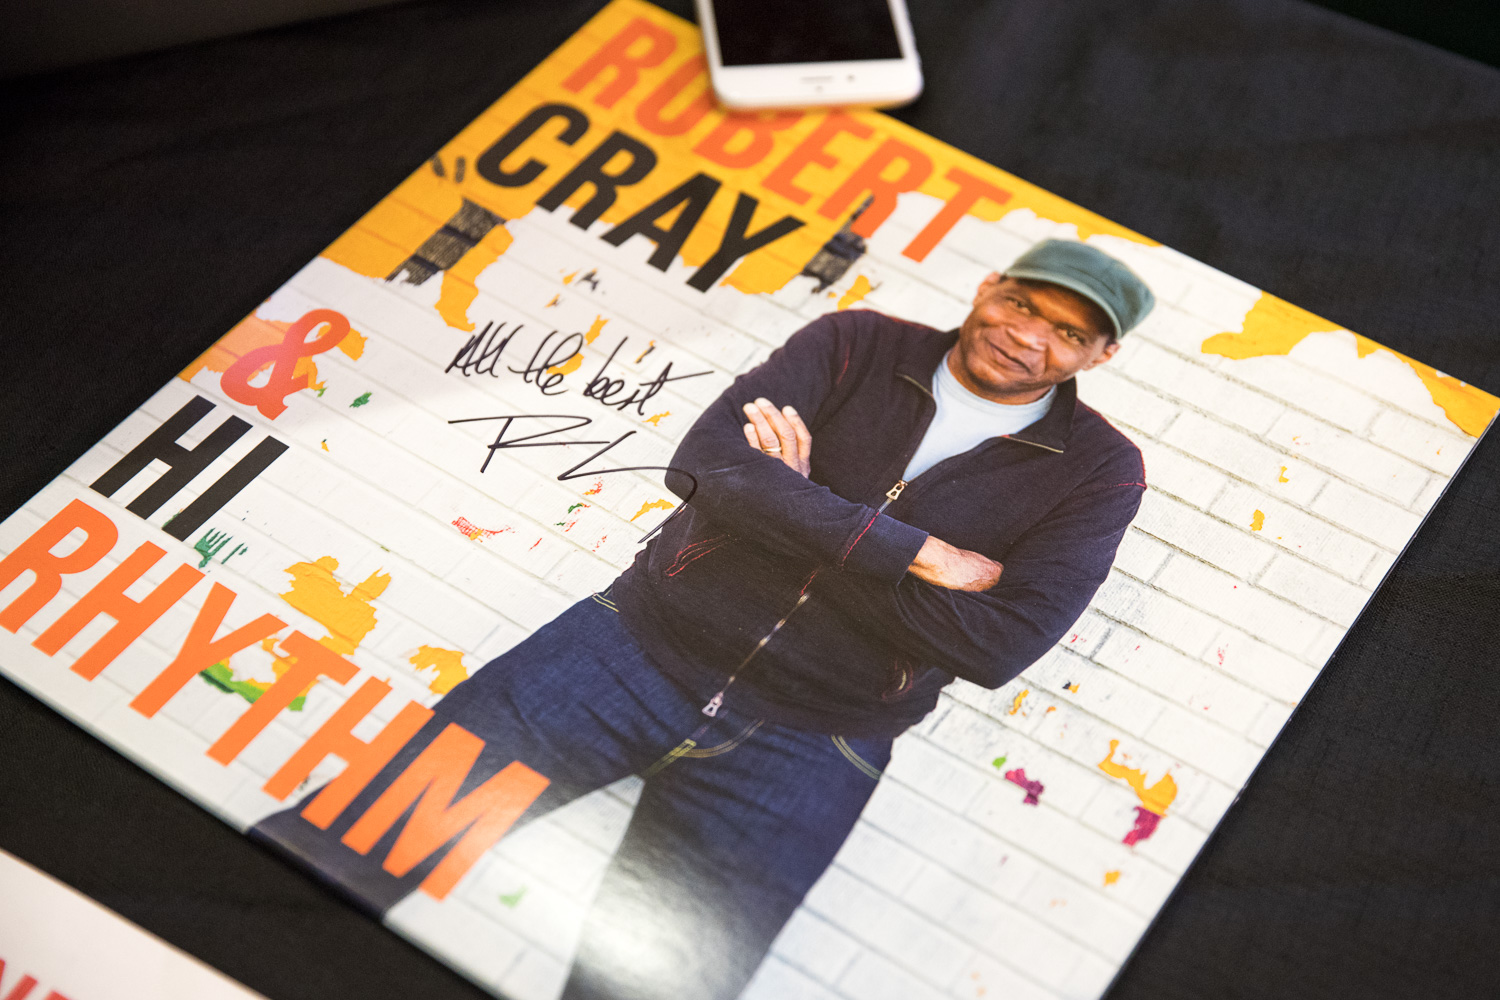 Robert Cray vinyl album for sale. Photo: @Lmsorenson.net